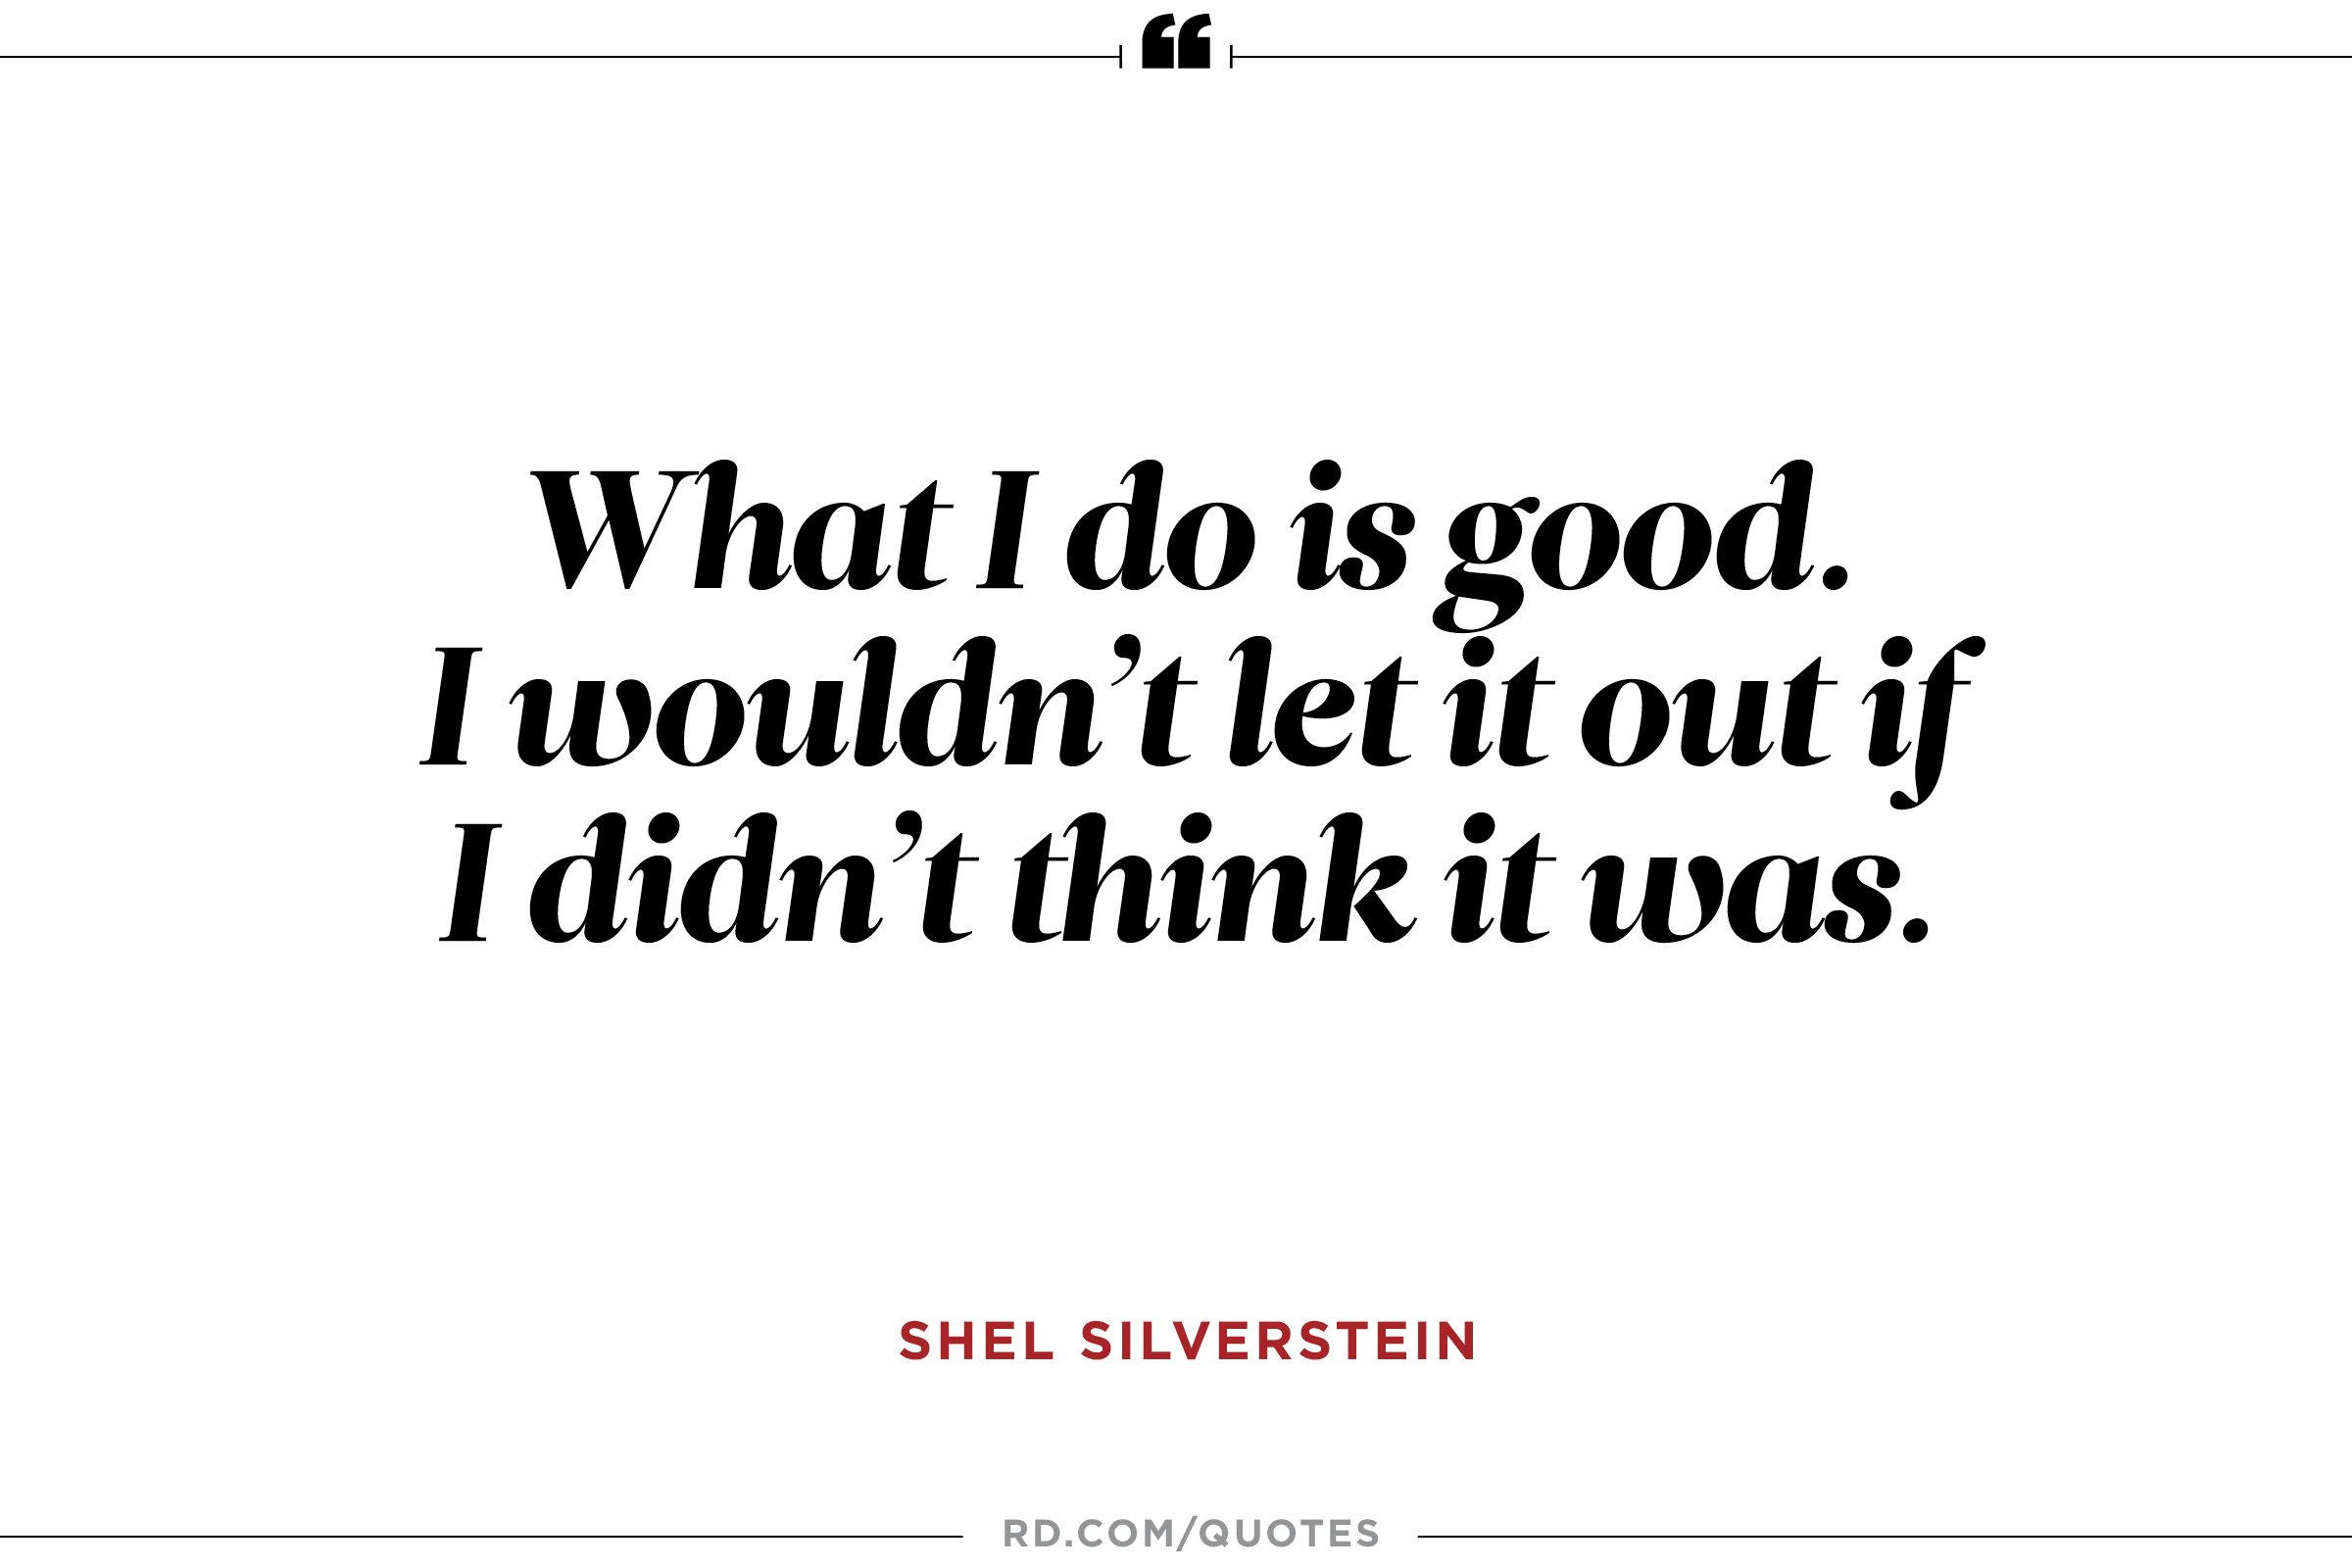 Work Inspirational Quotes 11 Motivational Quotes From Shel Silverstein  Reader's Digest